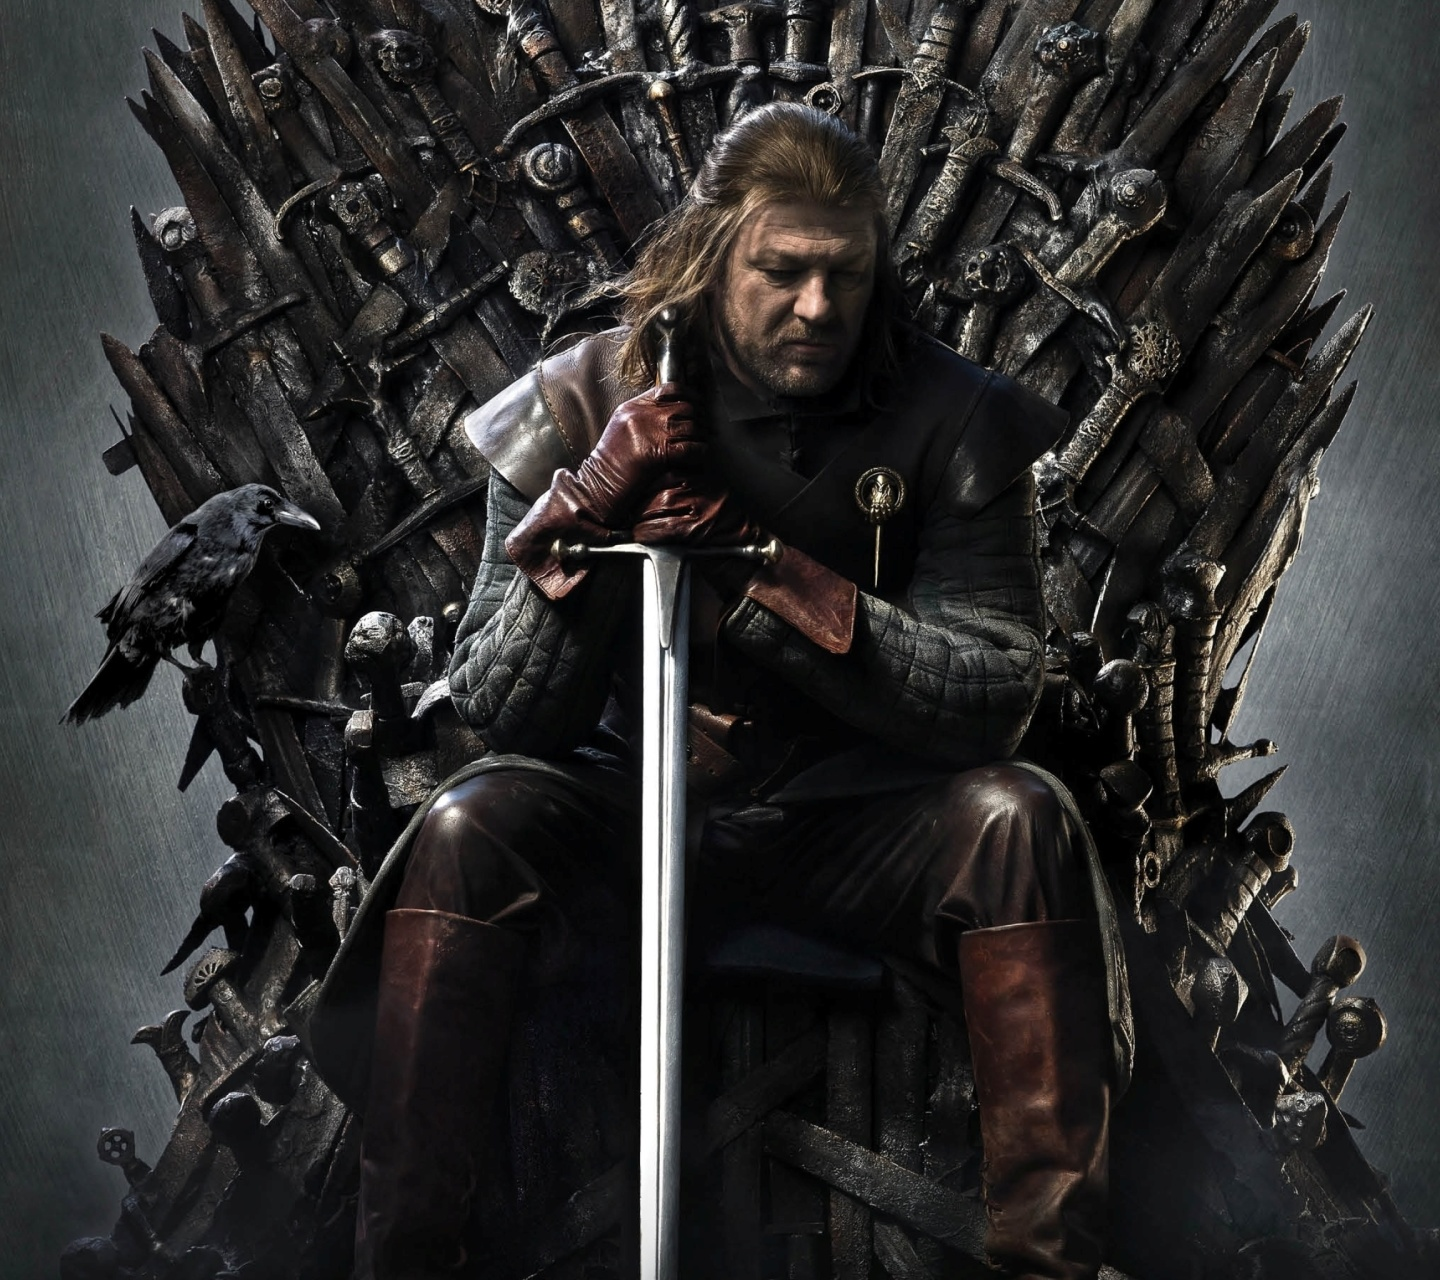 Обои Game Of Thrones A Song of Ice and Fire with Ned Star 1440x1280